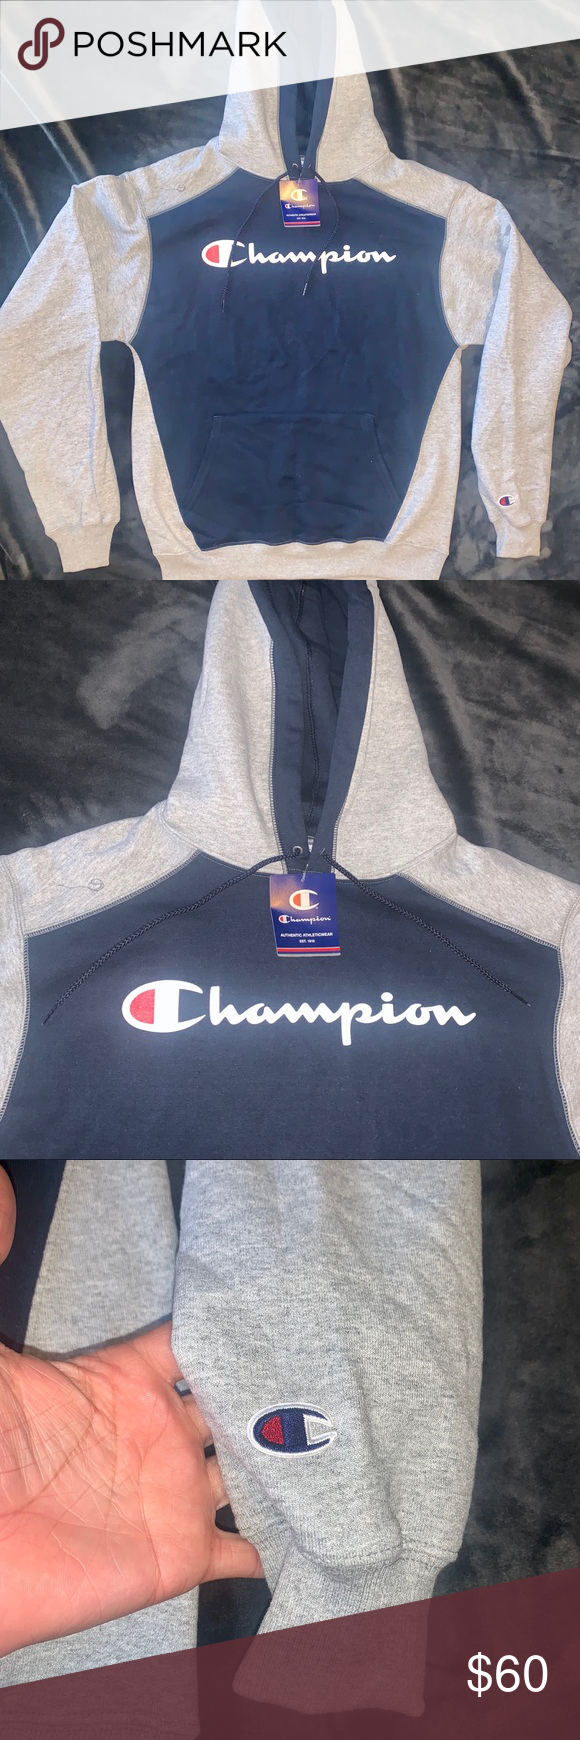 Champion hoodie Champion hoodie  Size medium and large available   Nice thick material !!! Champion Sweaters #championhoodie Champion hoodie Champion hoodie  Size medium and large available   Nice thick material !!! Champion Sweaters #championhoodie Champion hoodie Champion hoodie  Size medium and large available   Nice thick material !!! Champion Sweaters #championhoodie Champion hoodie Champion hoodie  Size medium and large available   Nice thick material !!! Champion Sweaters #championhoodie